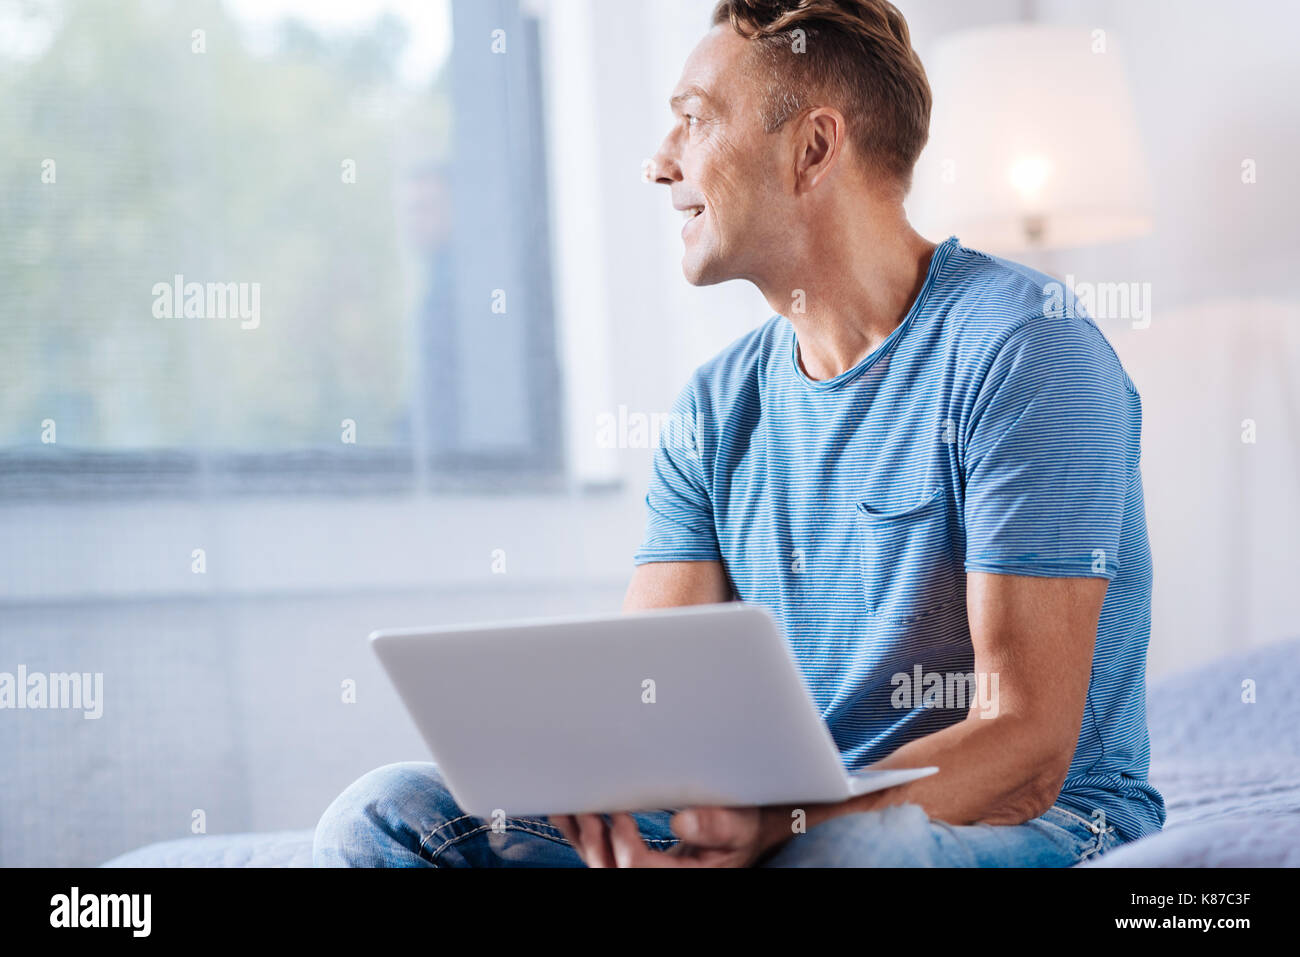 Cheerful man holding laptop and looking into the window - Stock Image